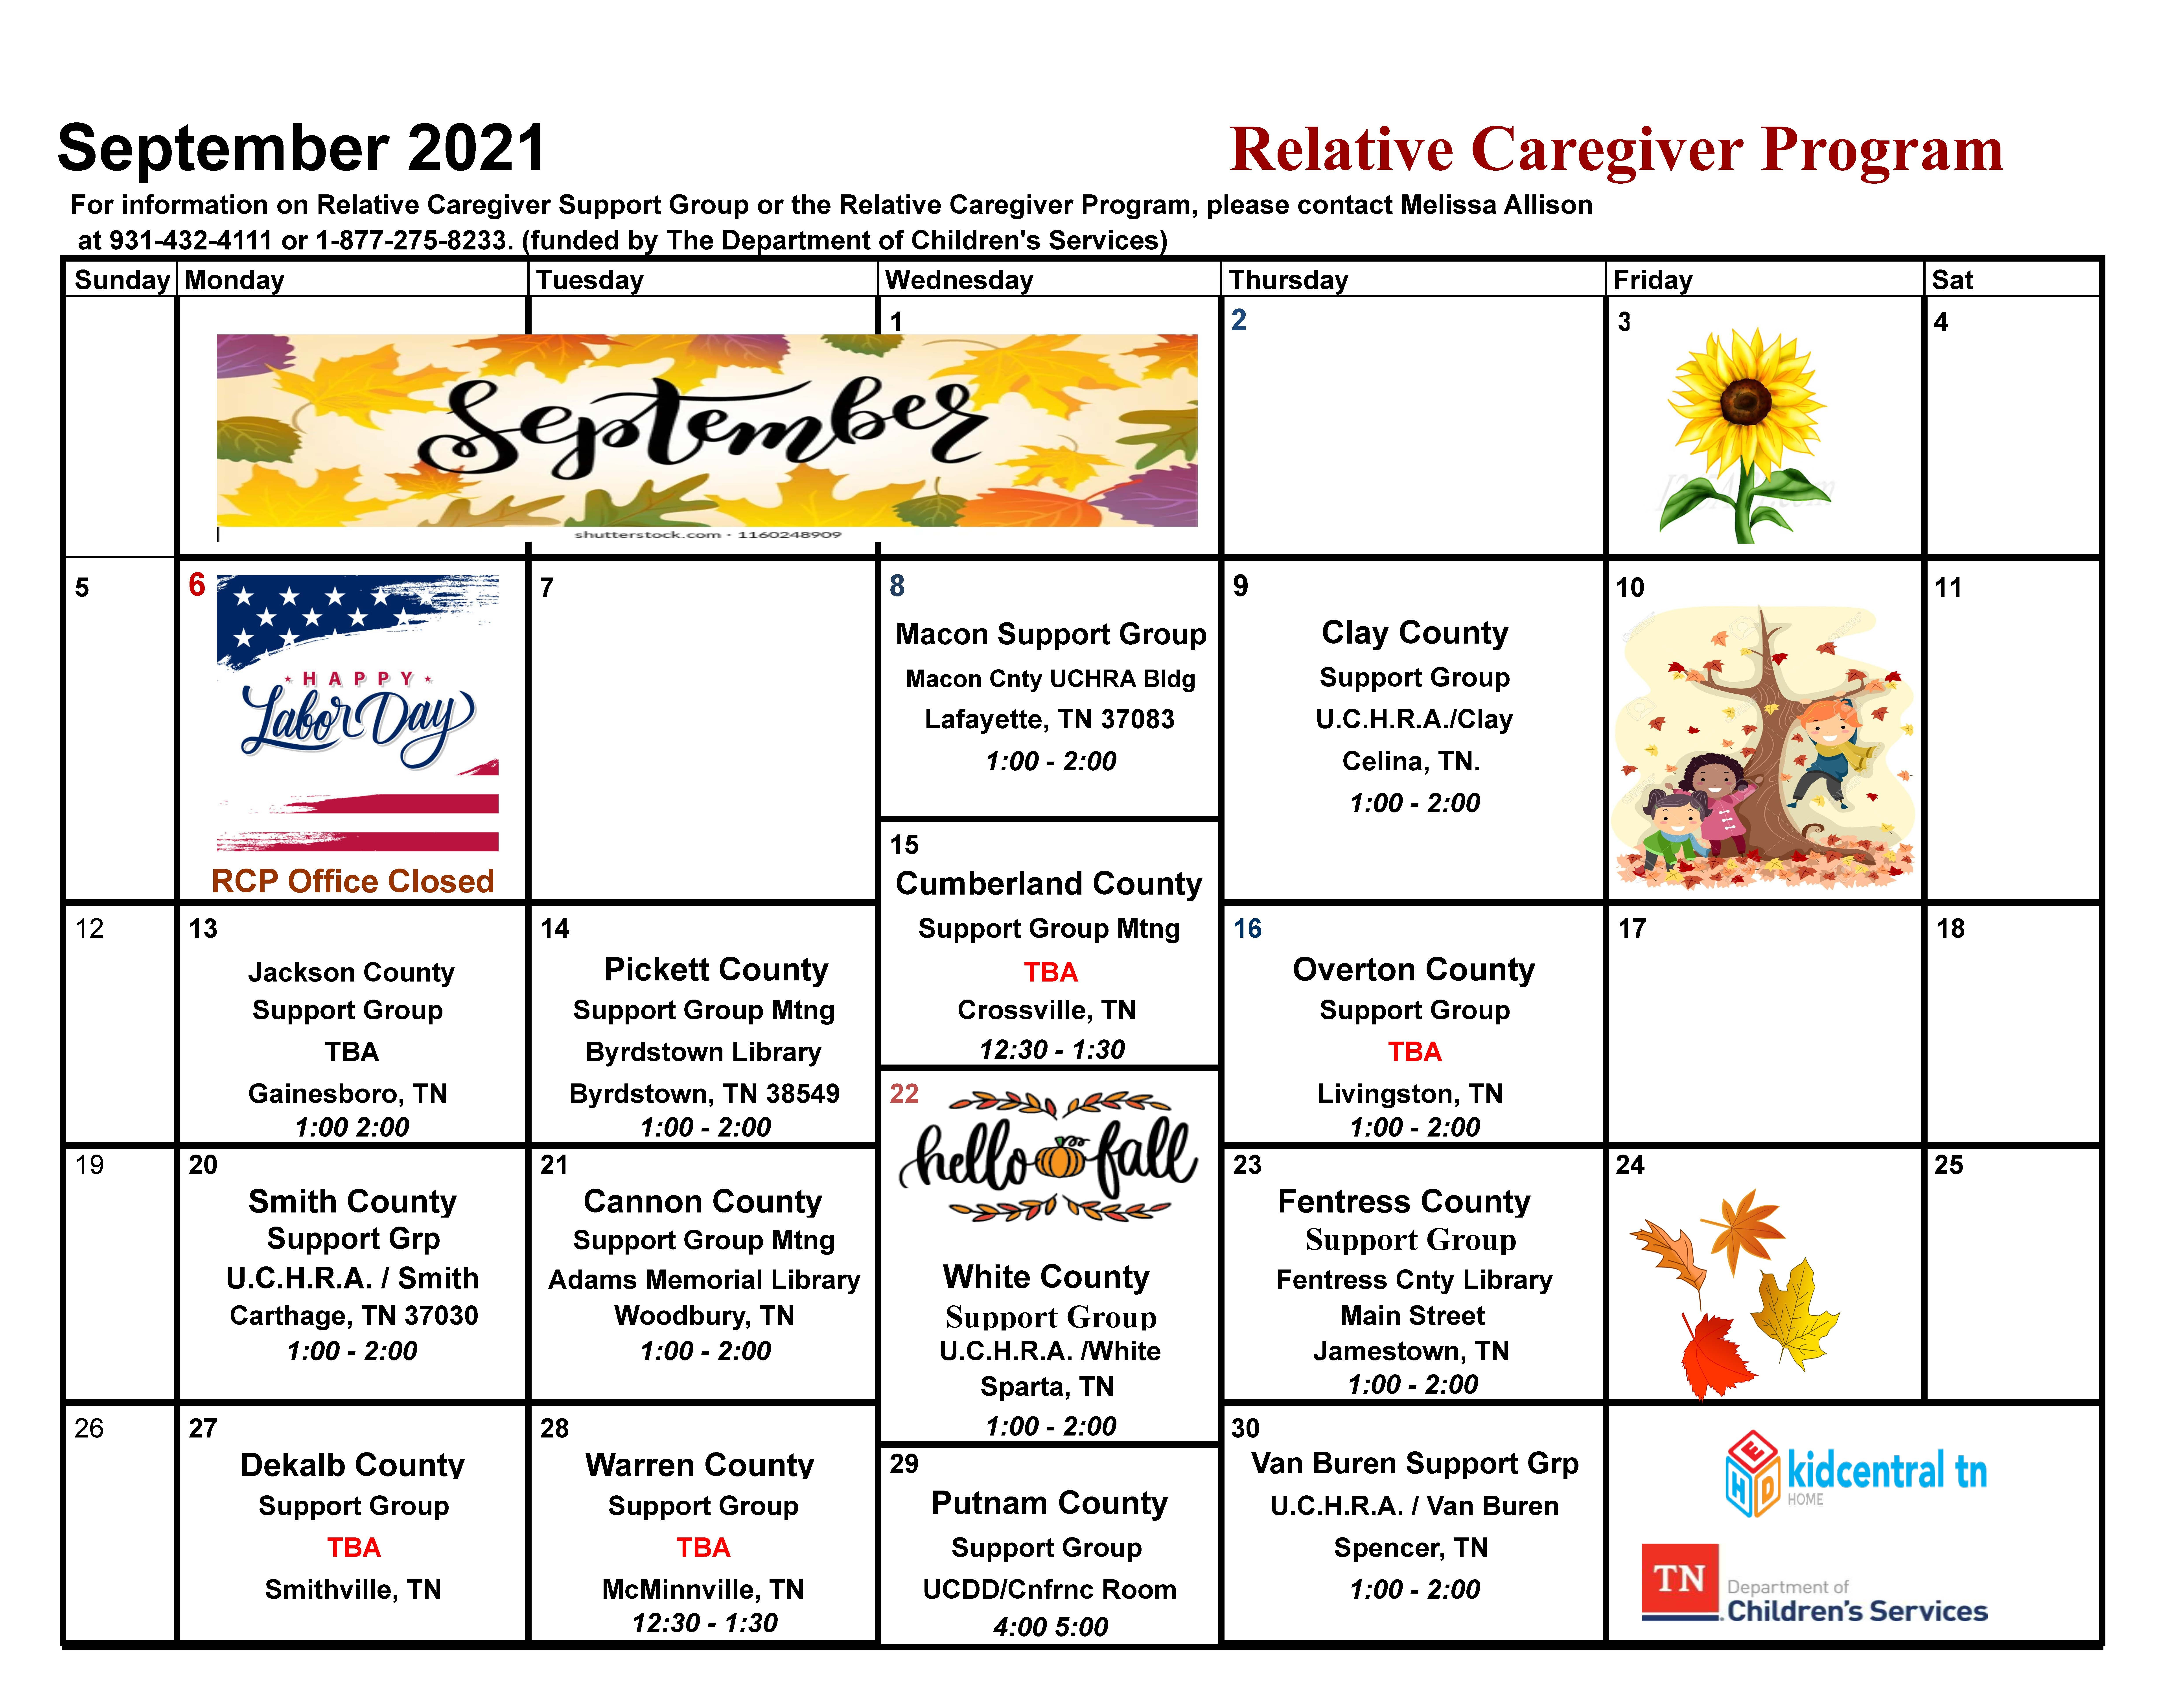 Relative Caregiver Program to Hold Support Group Meeting